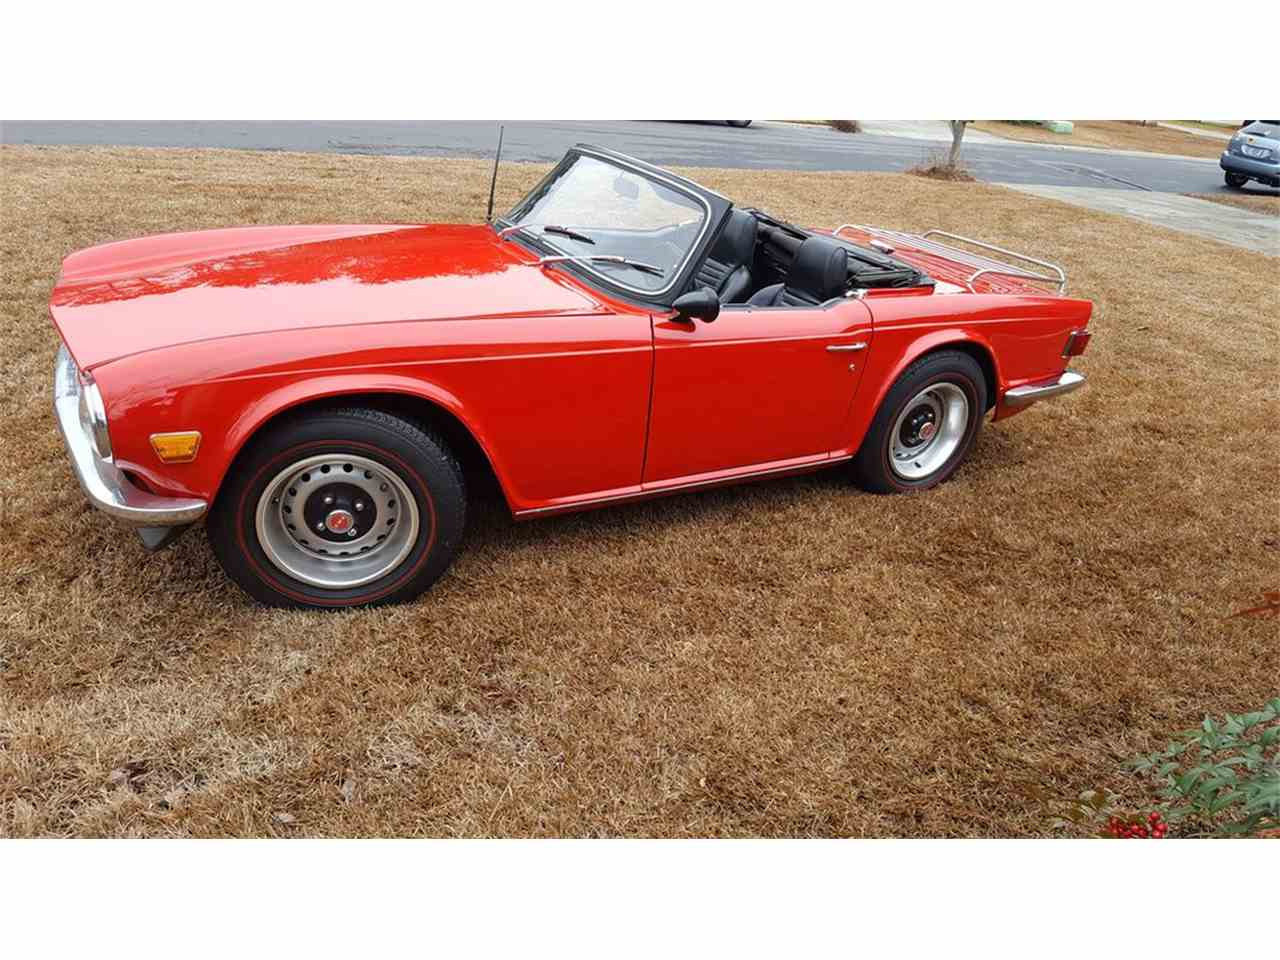 1968 to 1970 Triumph TR6 for Sale on ClassicCars.com